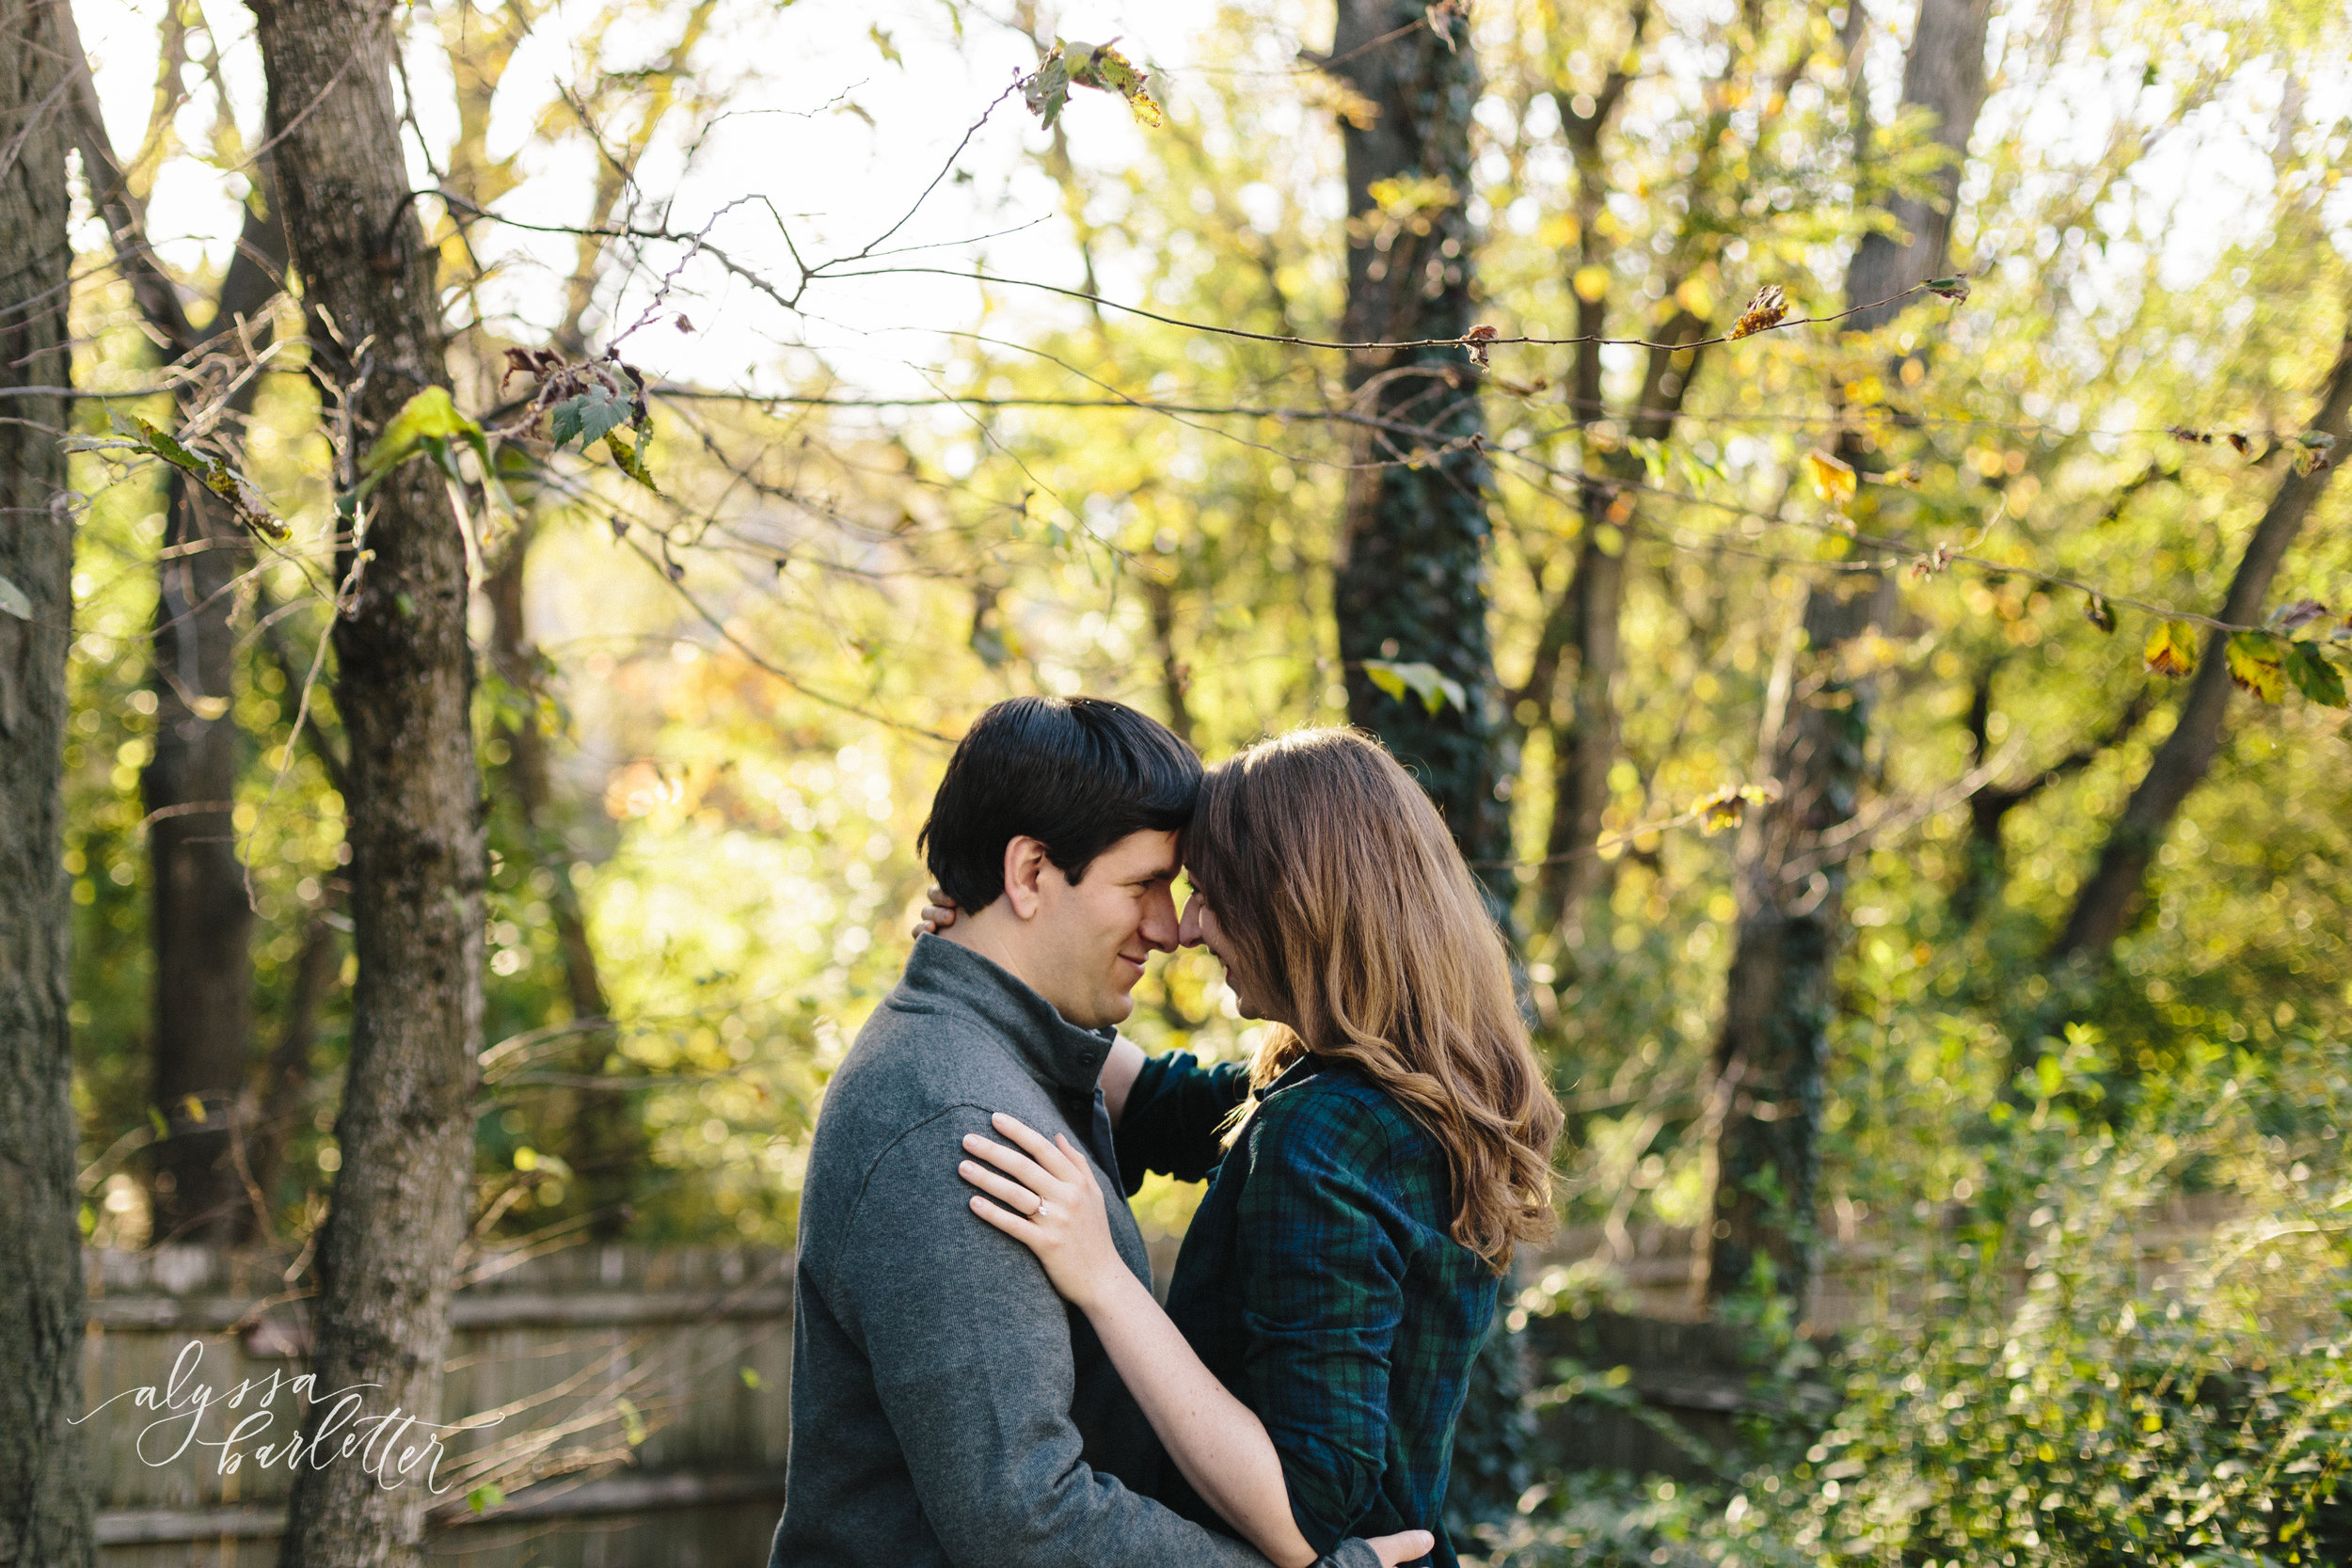 alyssa barletter photography olathe kansas engagement photos fall park jessica and kyle-1.jpg